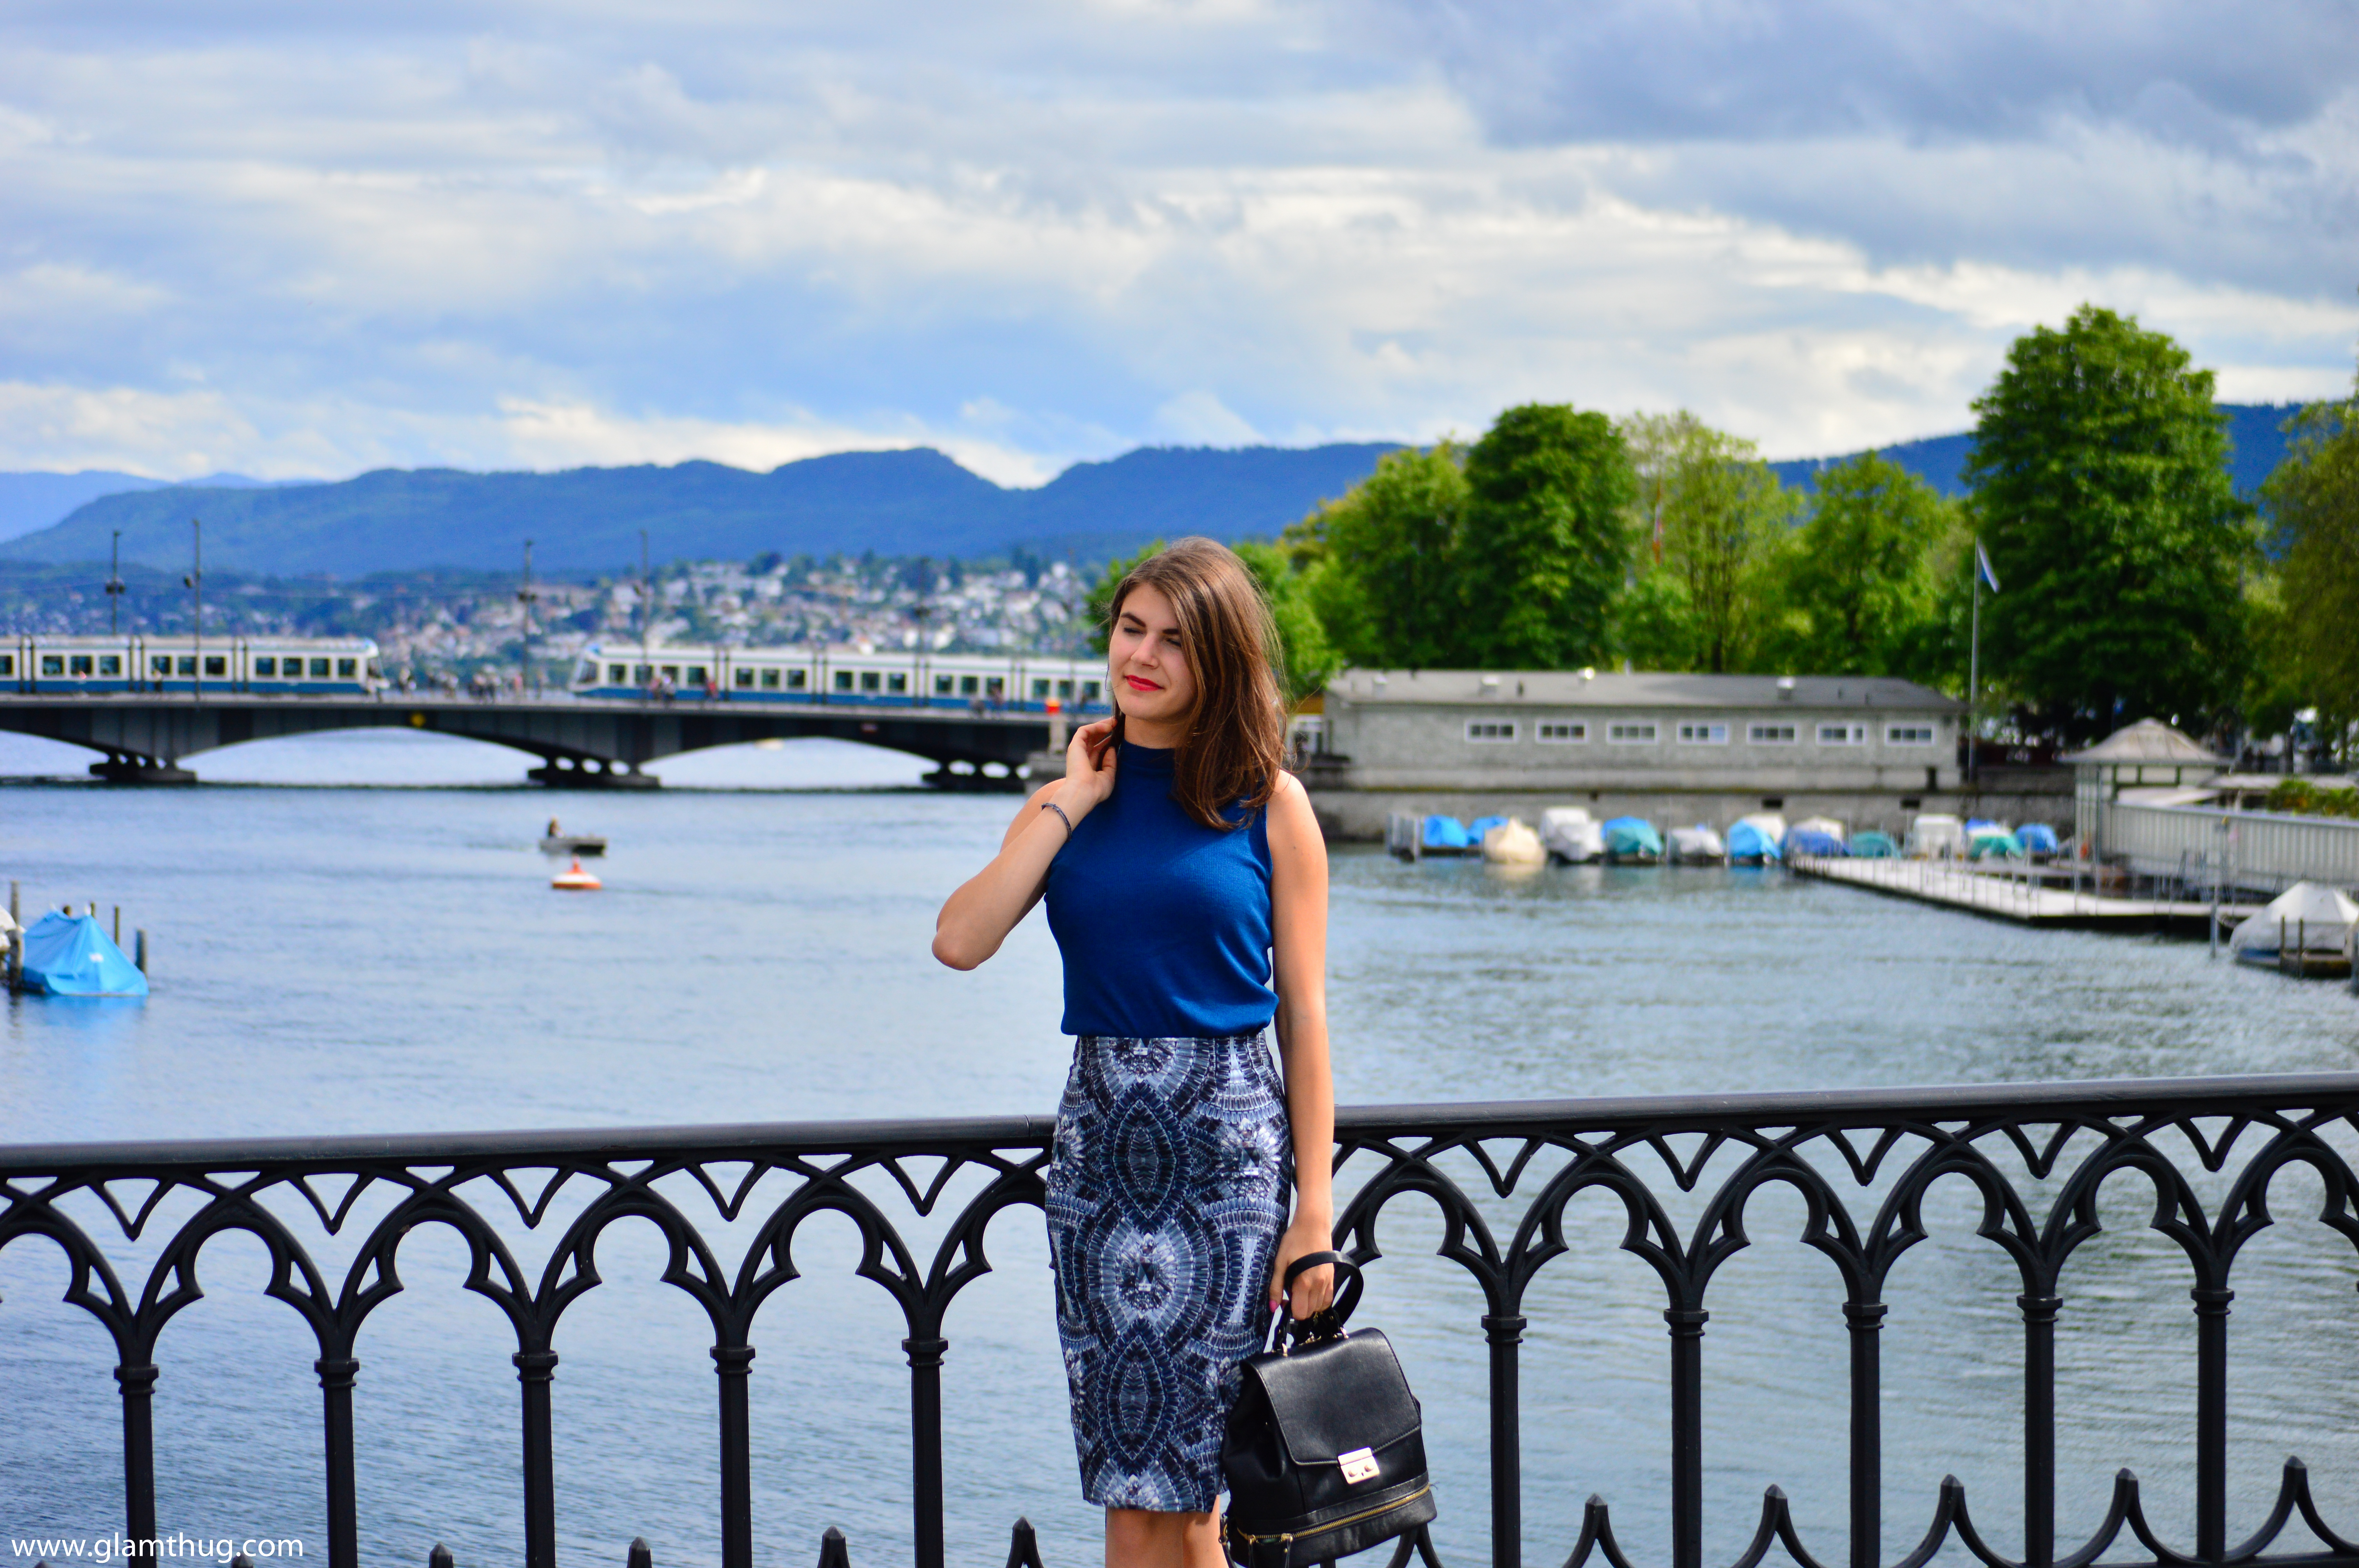 what to do in zurich, visit zurich blog, lifestyle blogger,glamthug blog